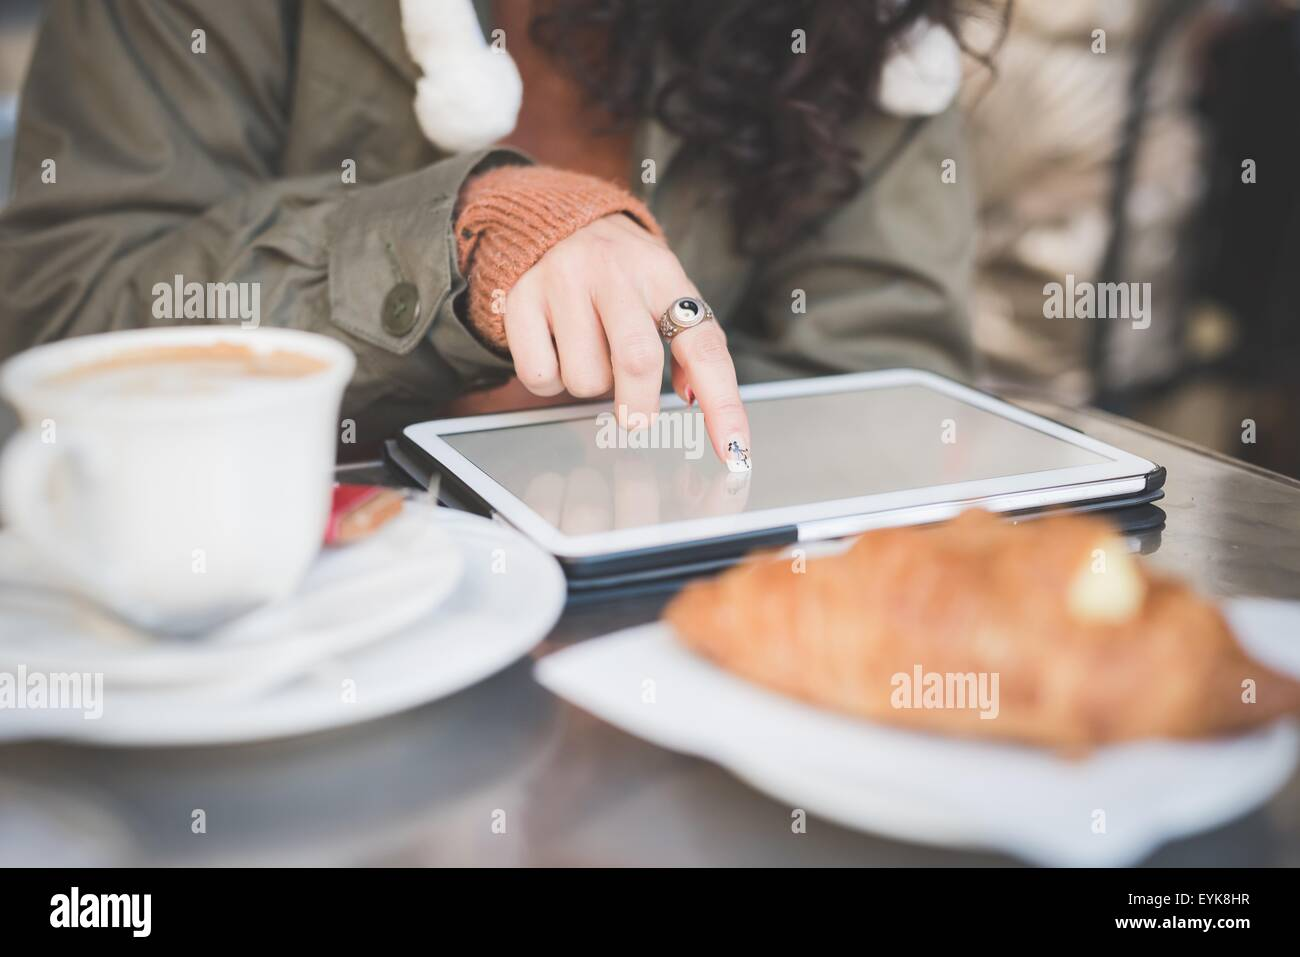 Cropped shot of young woman using touchscreen on digital tablet at sidewalk cafe - Stock Image